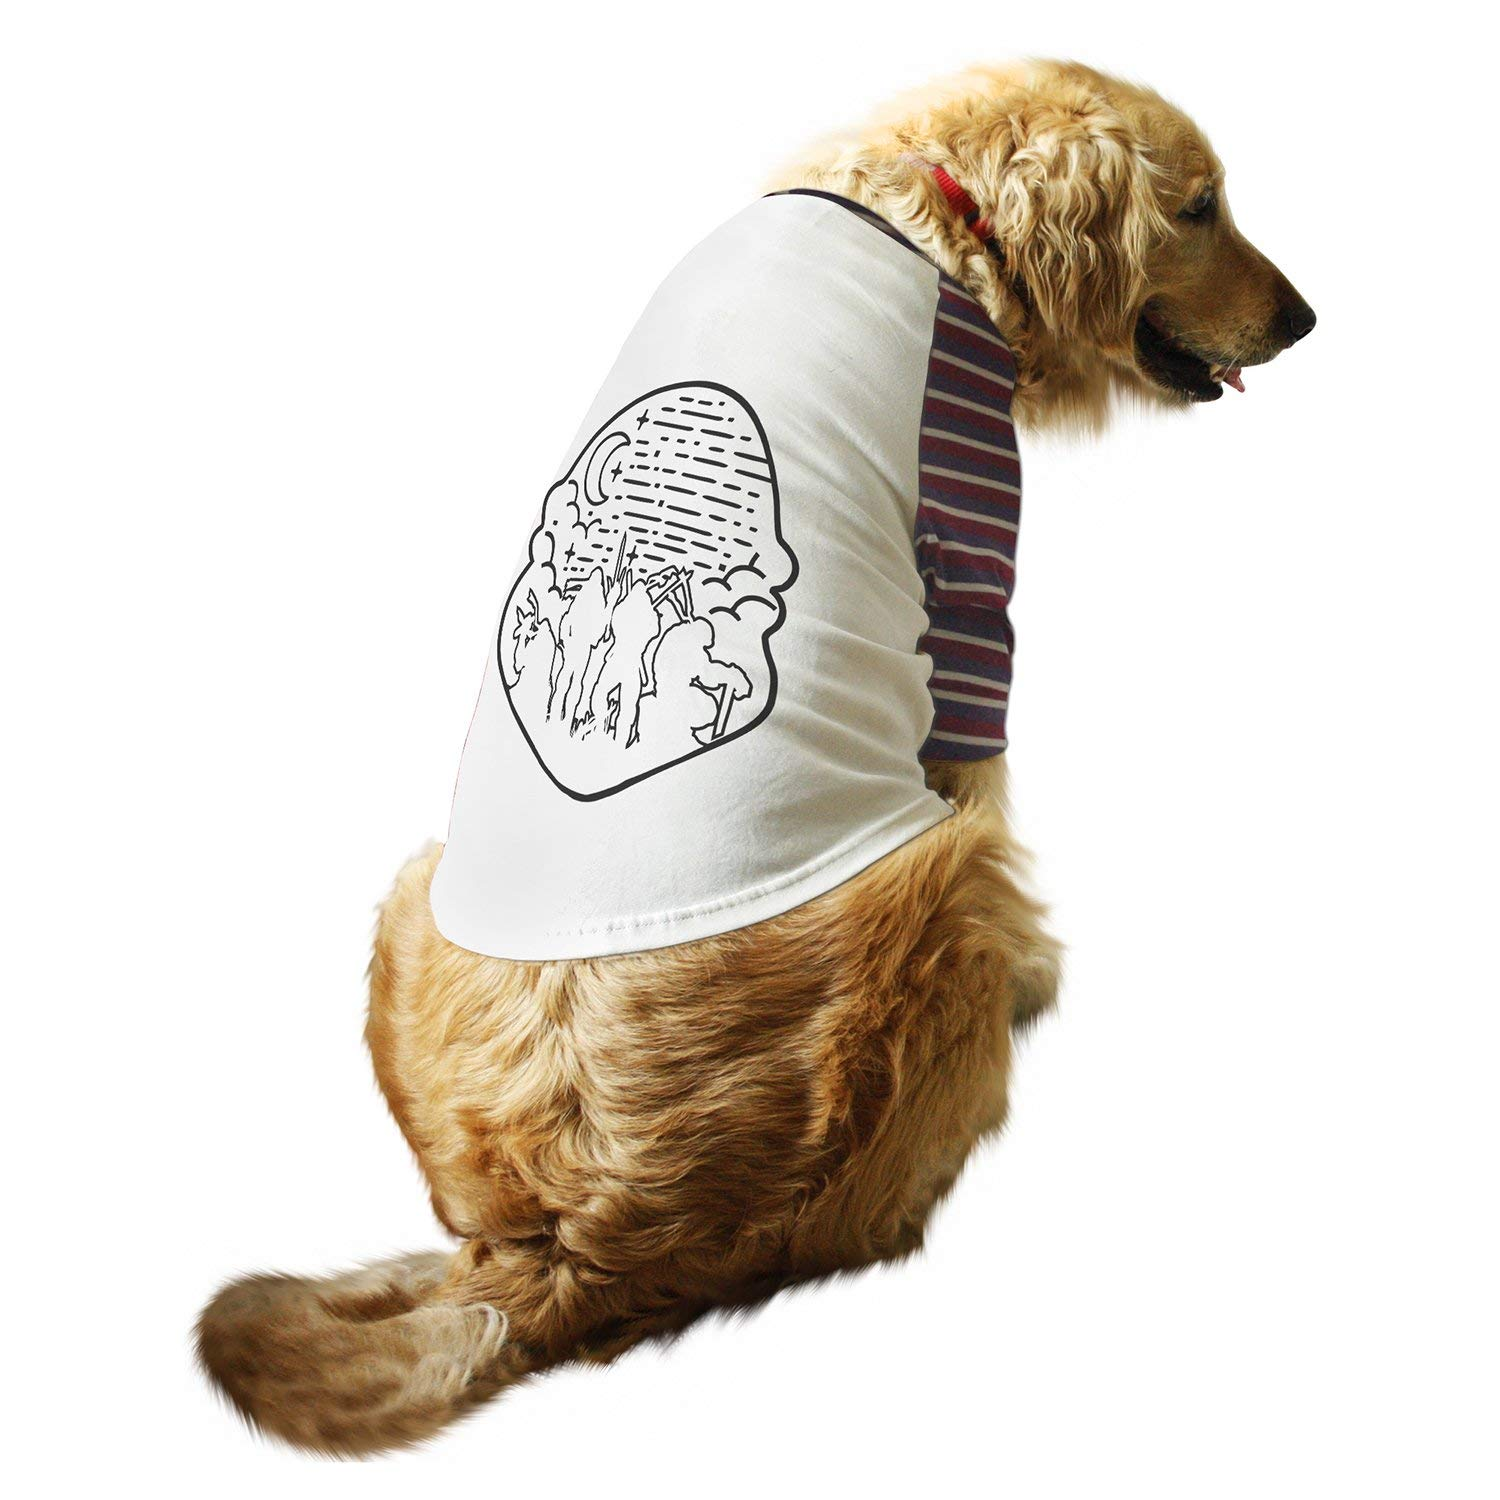 Ruse Pet Clothes Ninja Turtle Printed Striper Full Sleevess Round Neck Raglan Dog Streetwear T Shirt Tees Apparel For Dogs Amazon In Pet Supplies